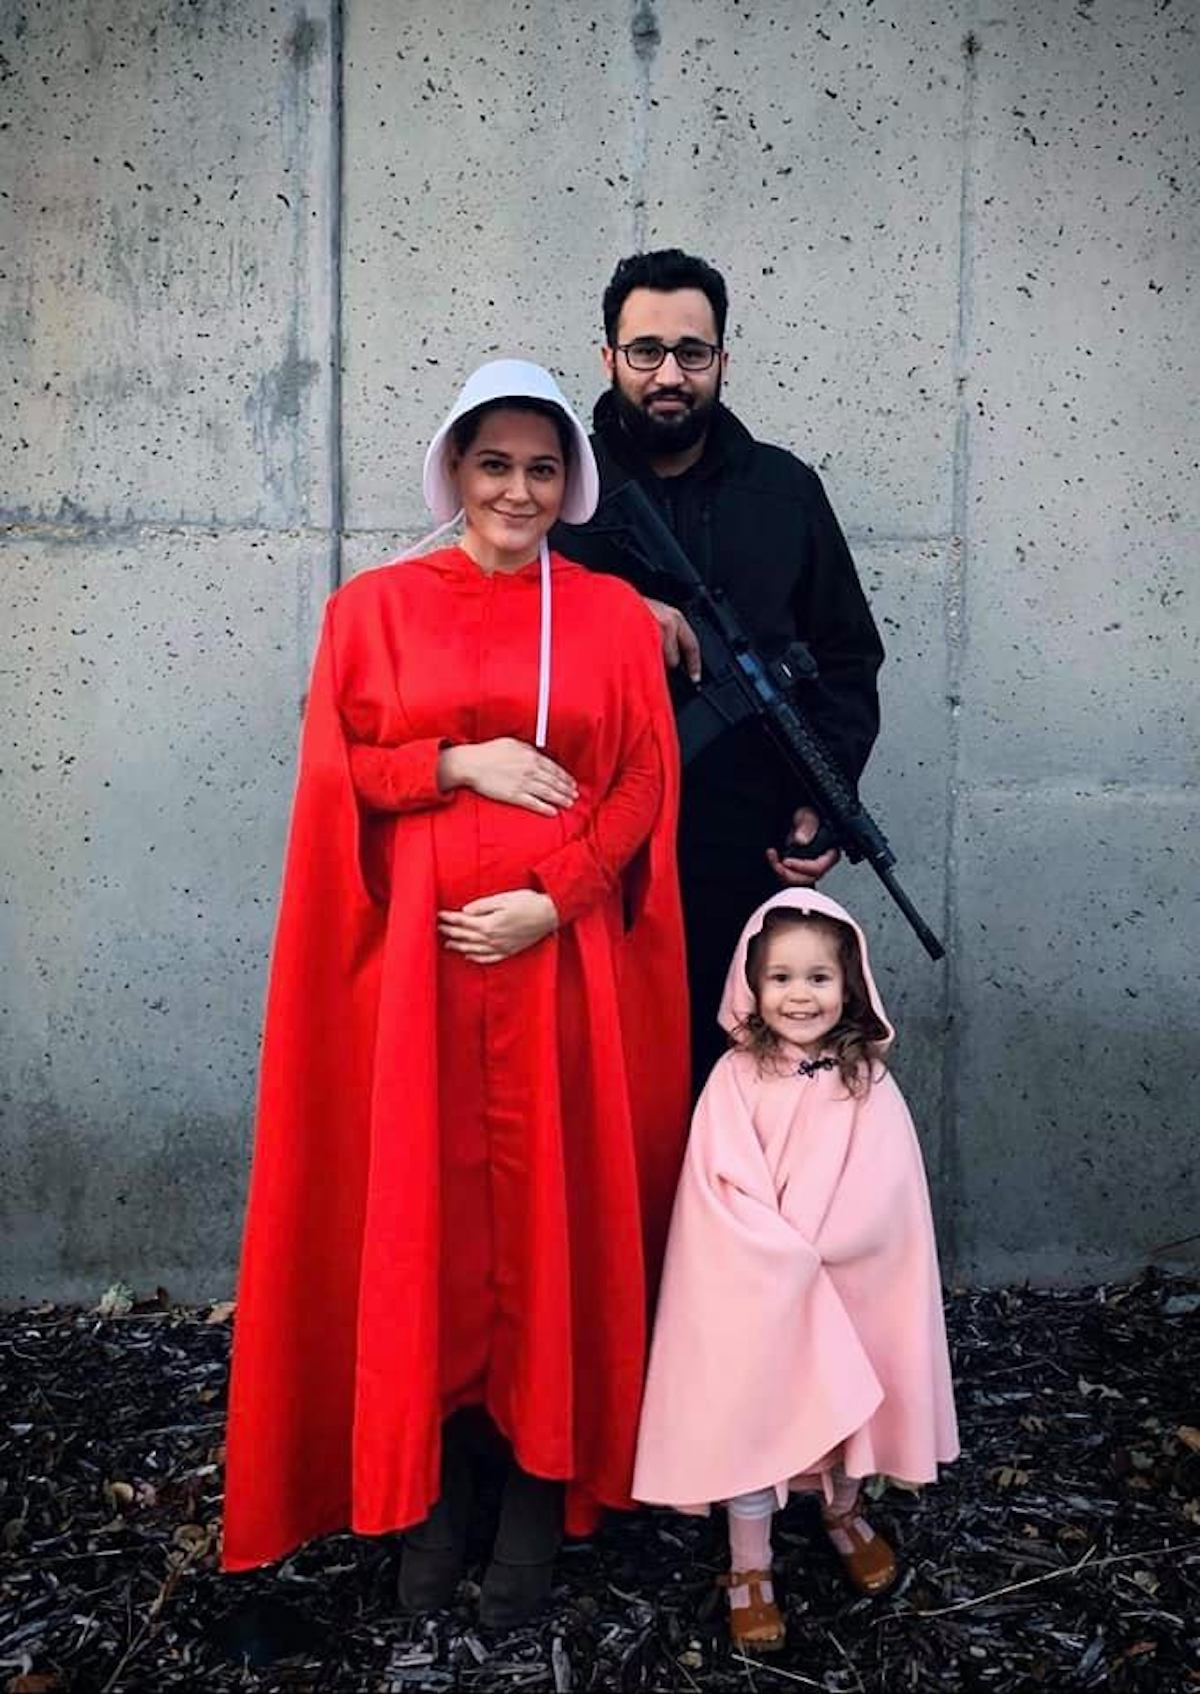 Family dressed as Handmaid's Tale stands in front of cement wall and smiles.